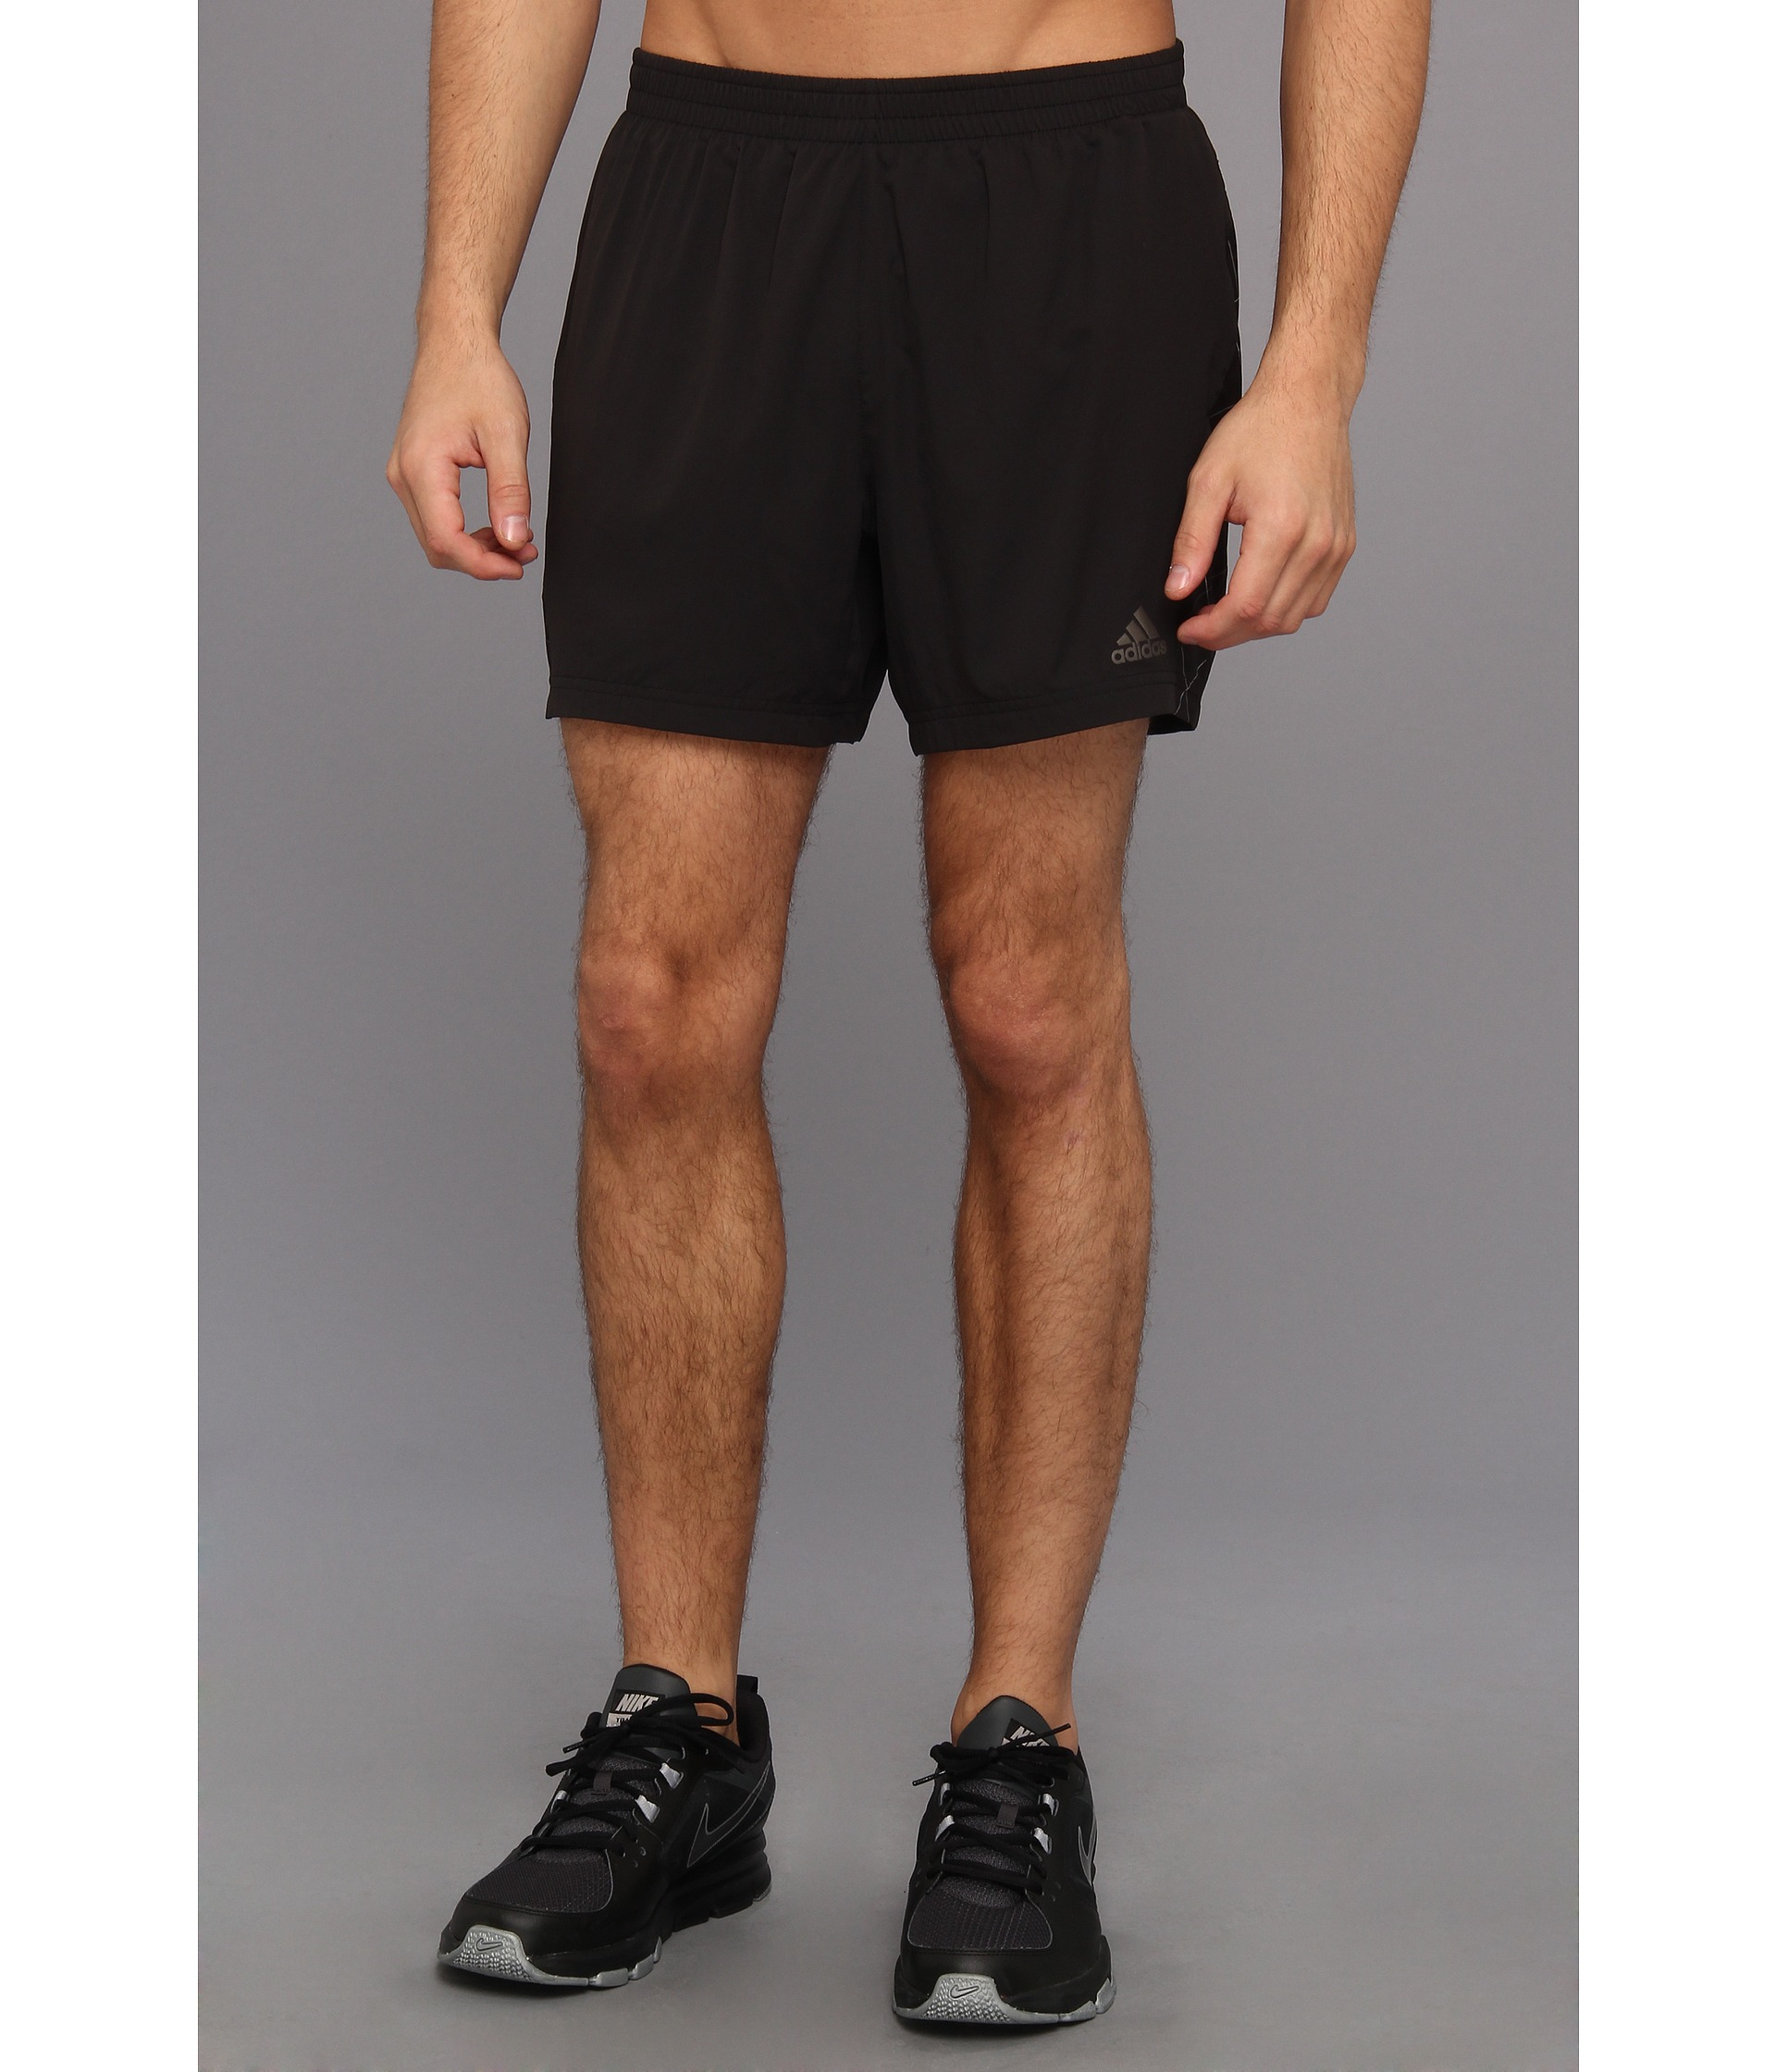 3be6a3fd0e8cf Lyst - adidas Supernova 5 Short in Black for Men